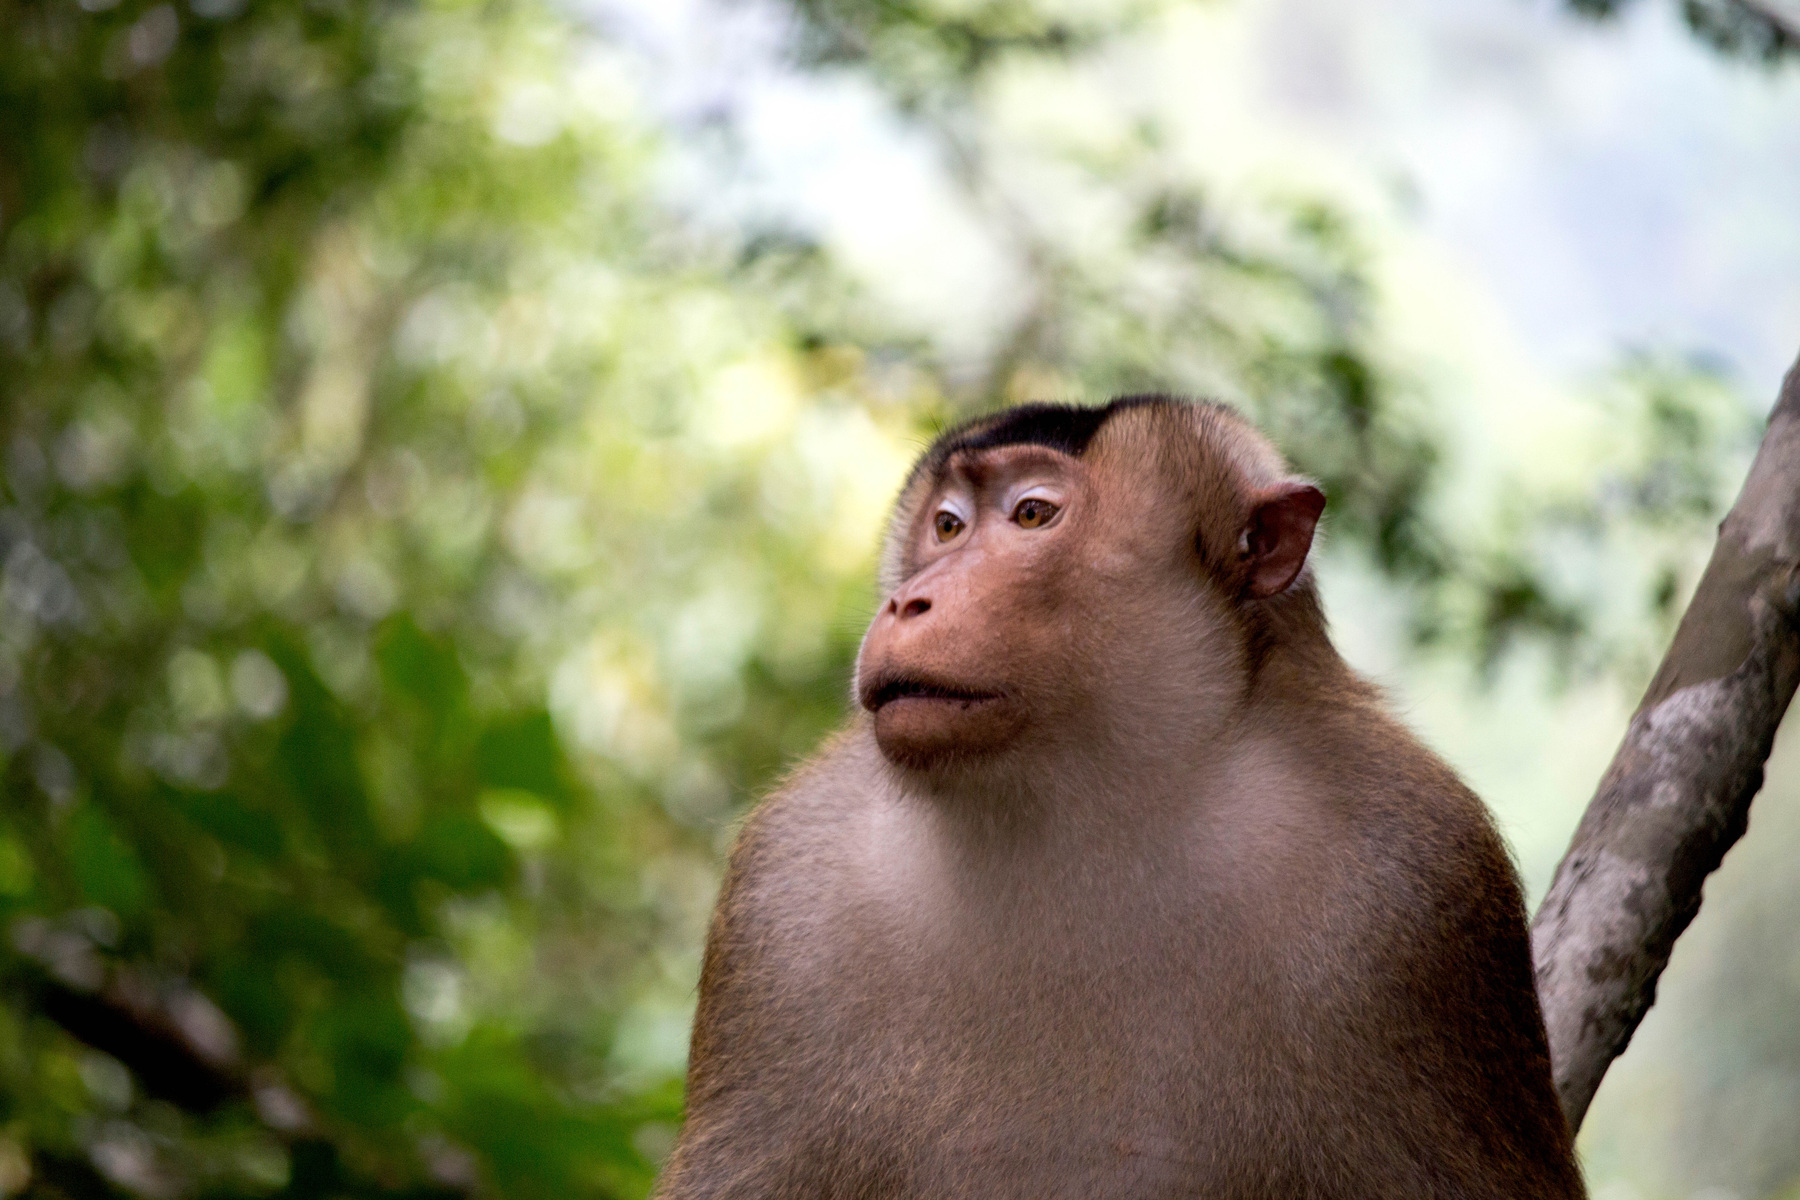 Genevieve French Photography - #1 Southern Pig Tailed Macaque (2019)